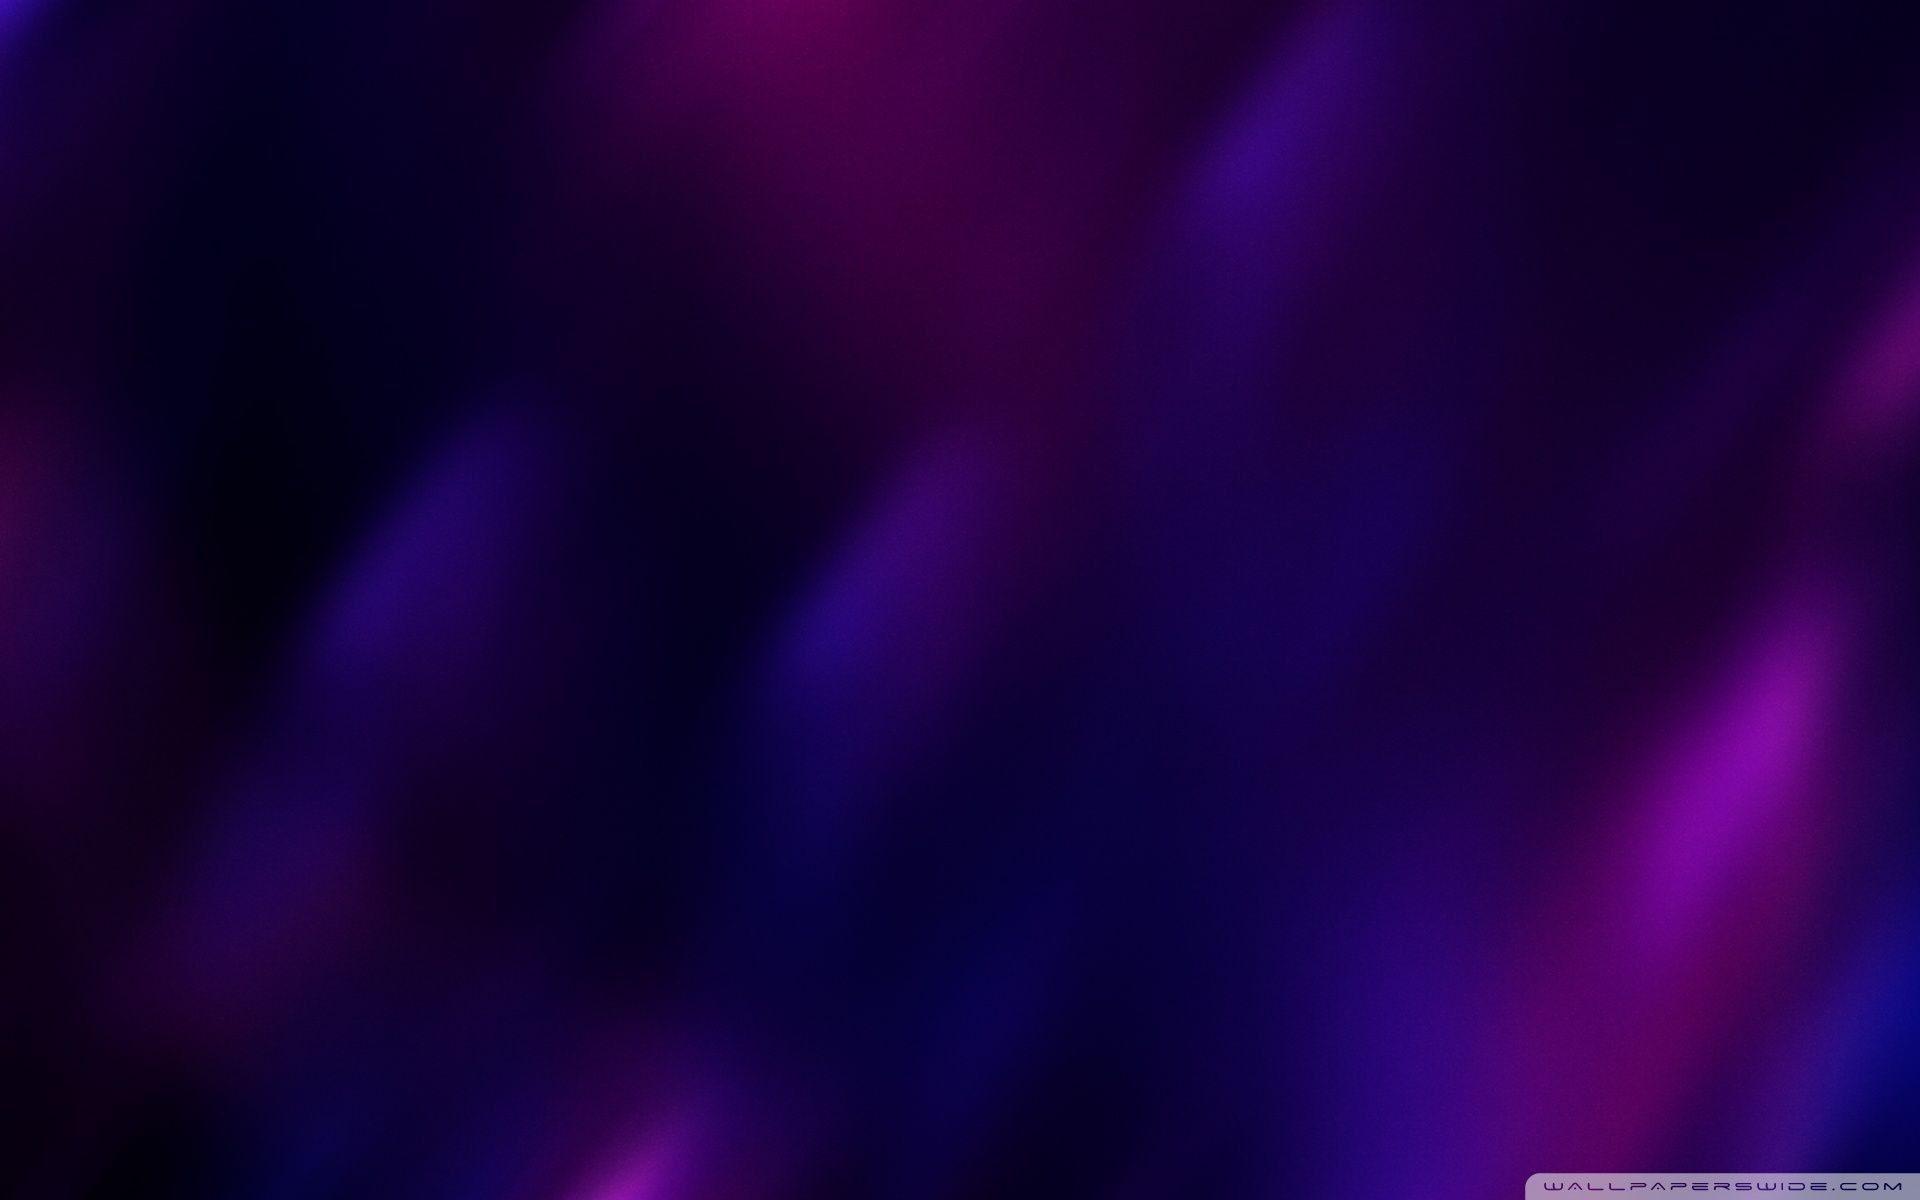 1920x1200 Black purple wallpapers wallpaper cave - Cool Purple Wallpapers Wallpaper  Cave. Download